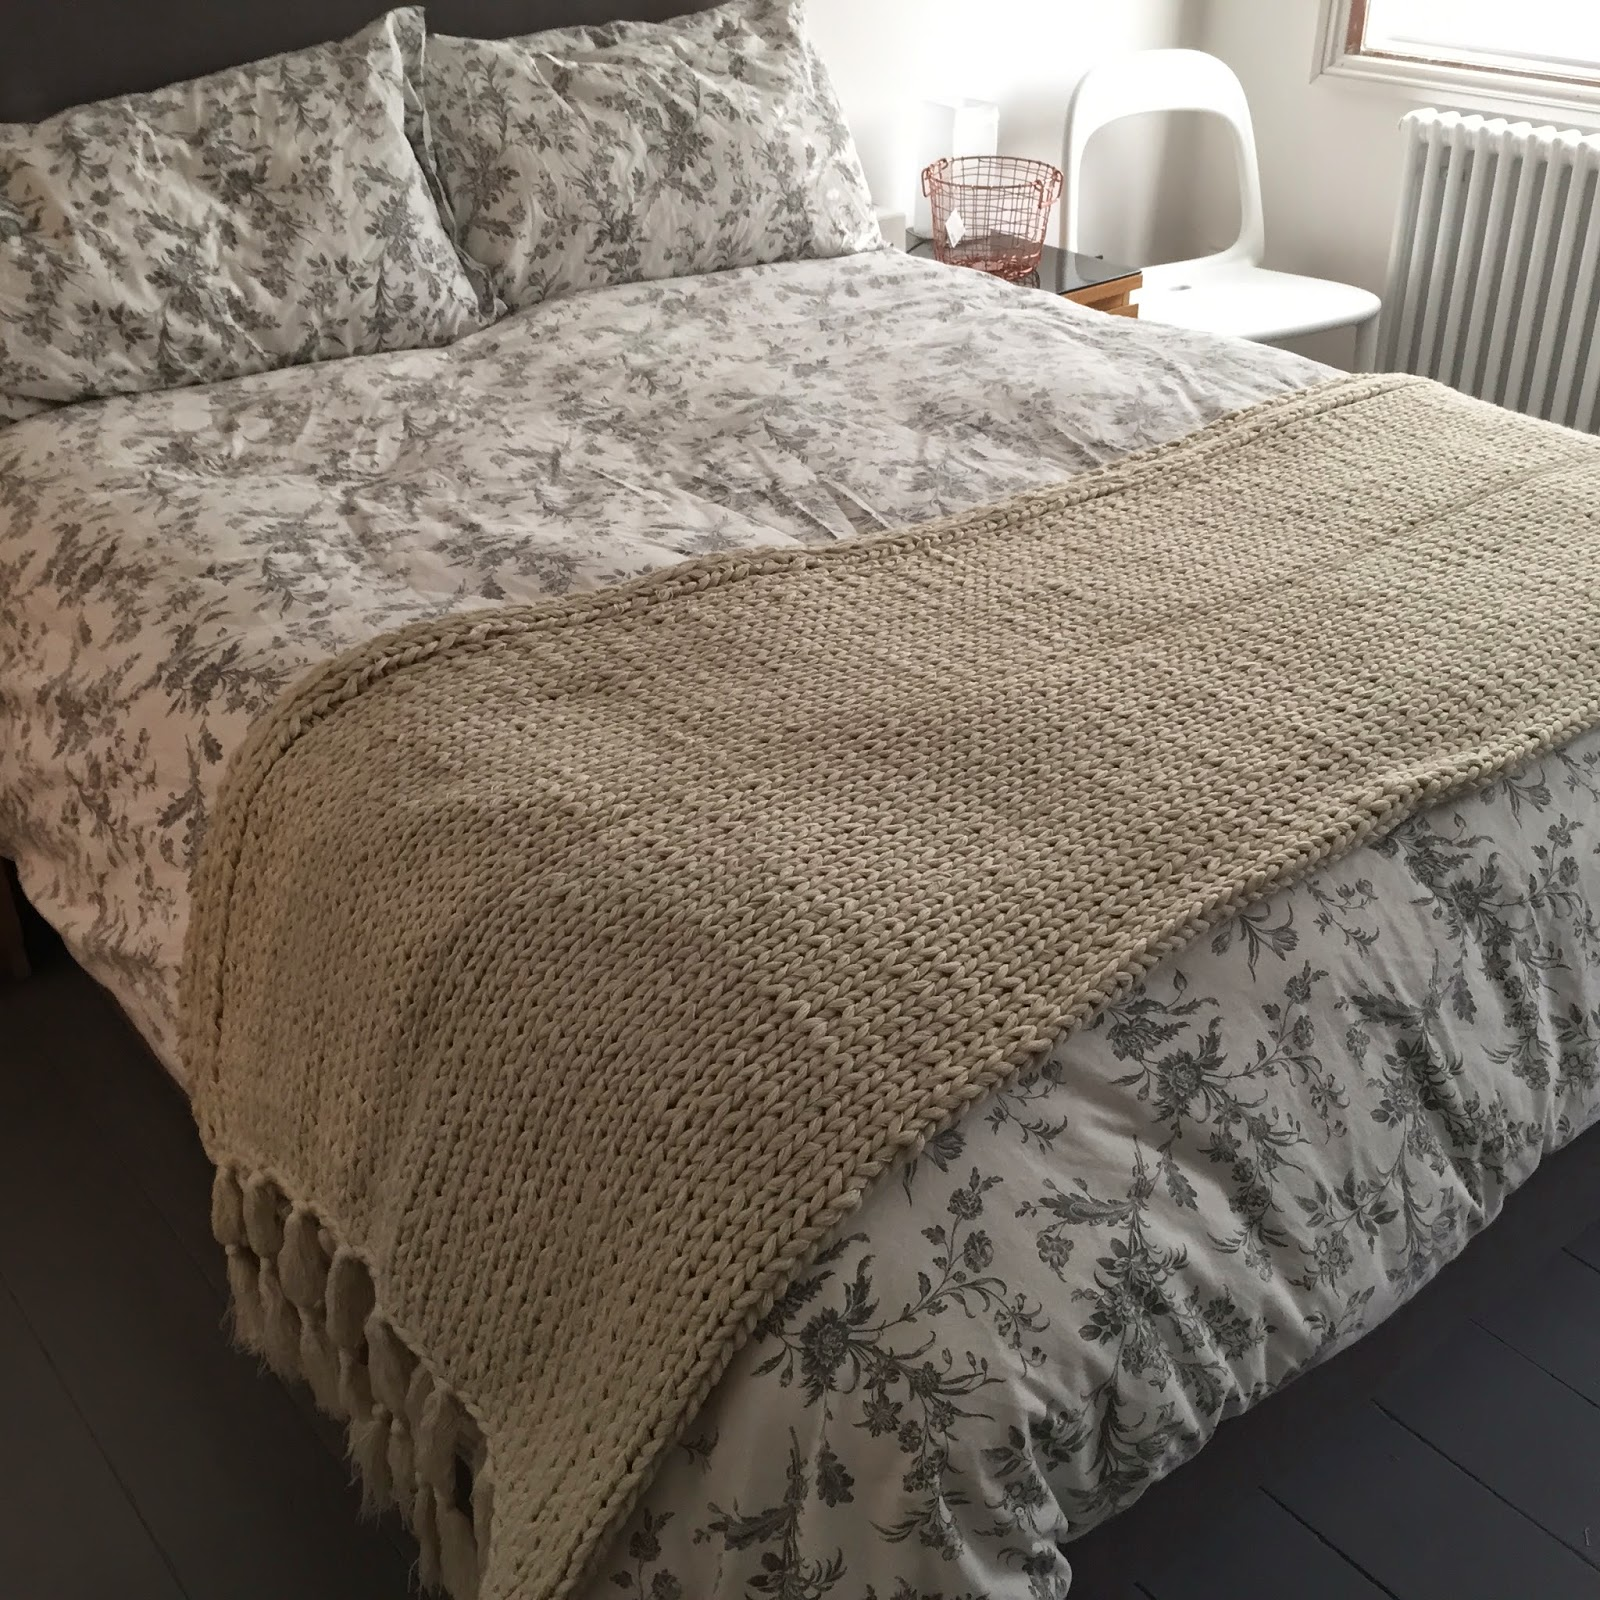 H&M Home Knitted Blanket